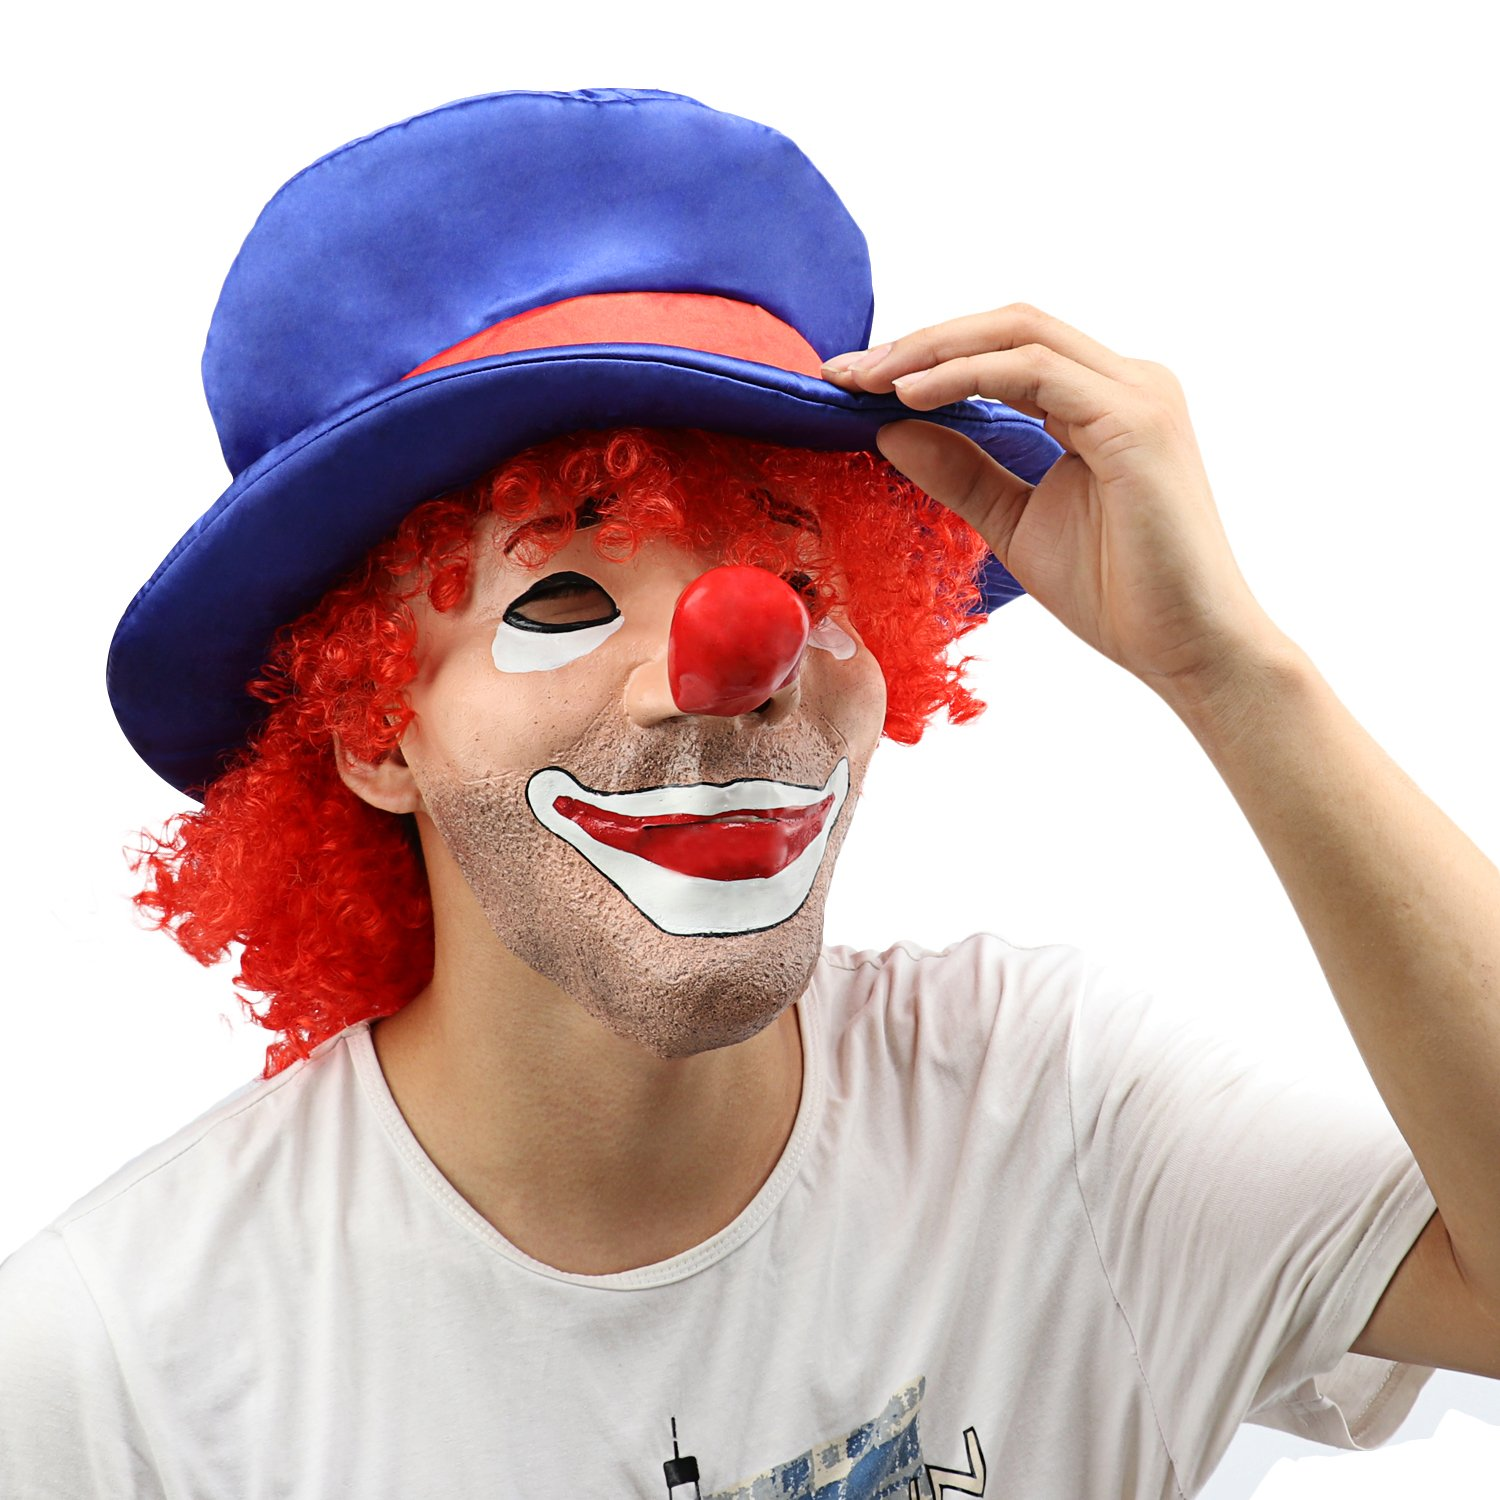 XIAO MO GU Latex Halloween Costume Mask Scary Clown Mask Red Hair Clown Halloween Decorations Masquerade Party